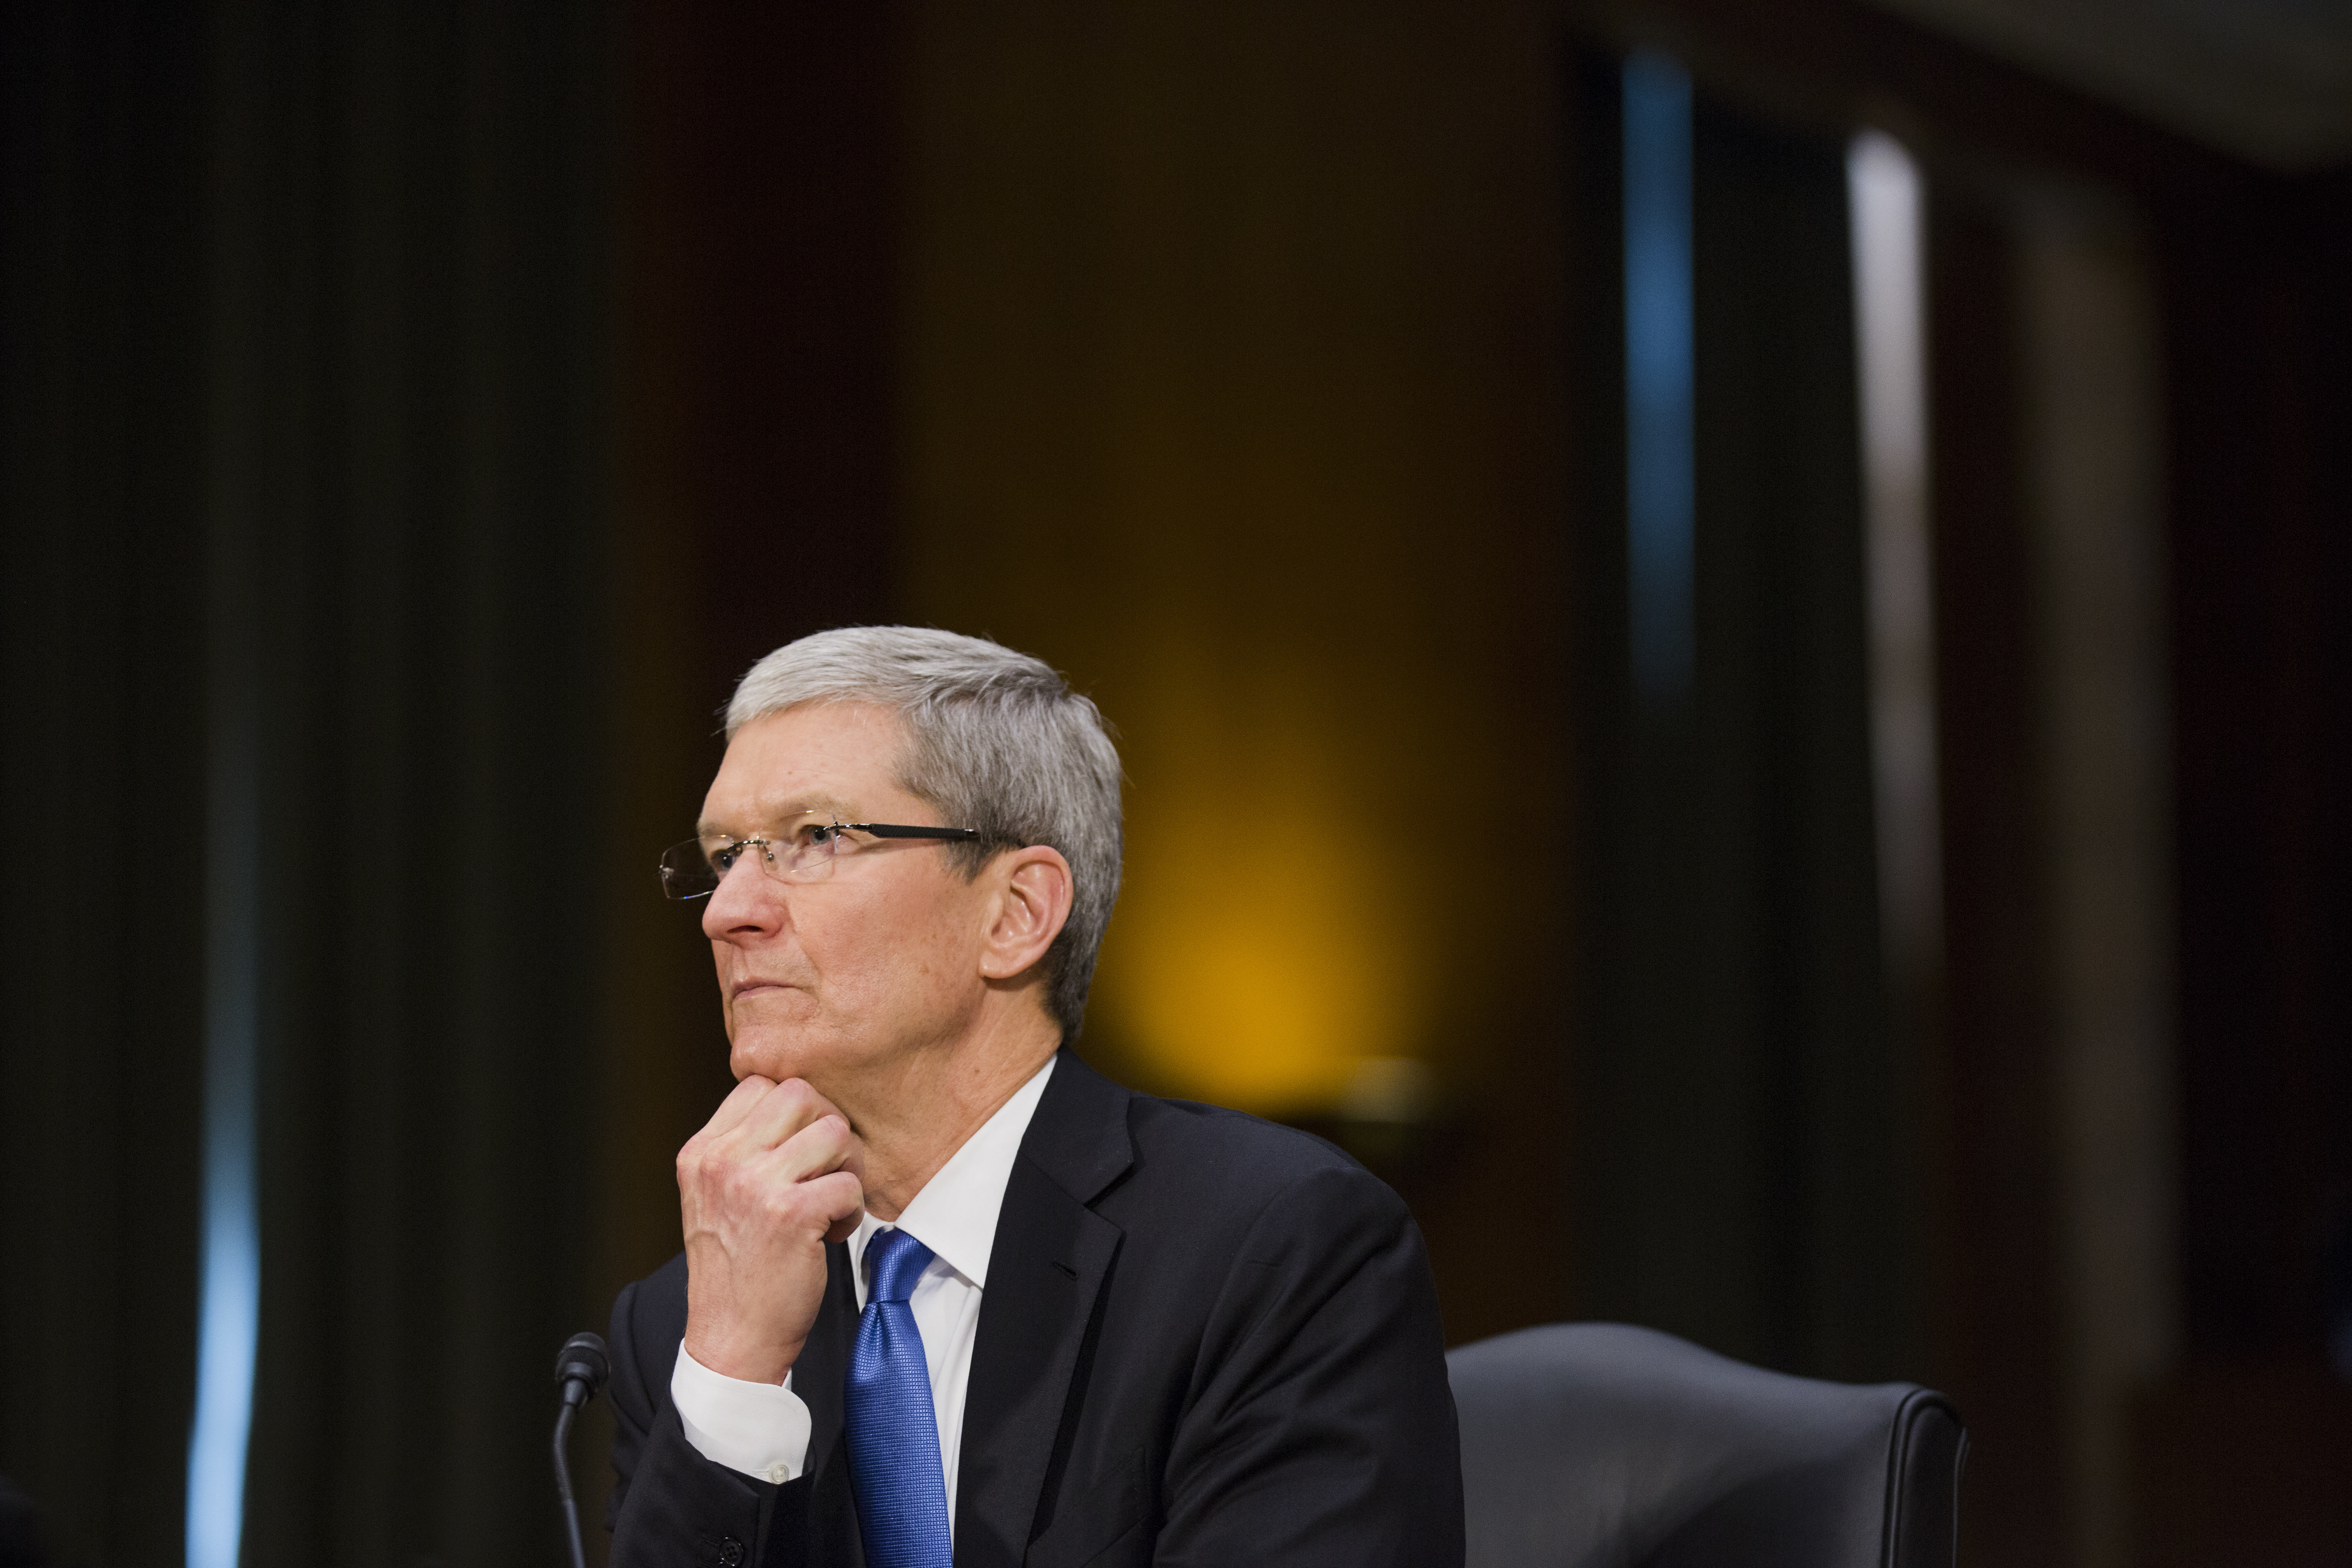 Senators criticize Apple's refusal to testify in hearing on app store rules | Engadget